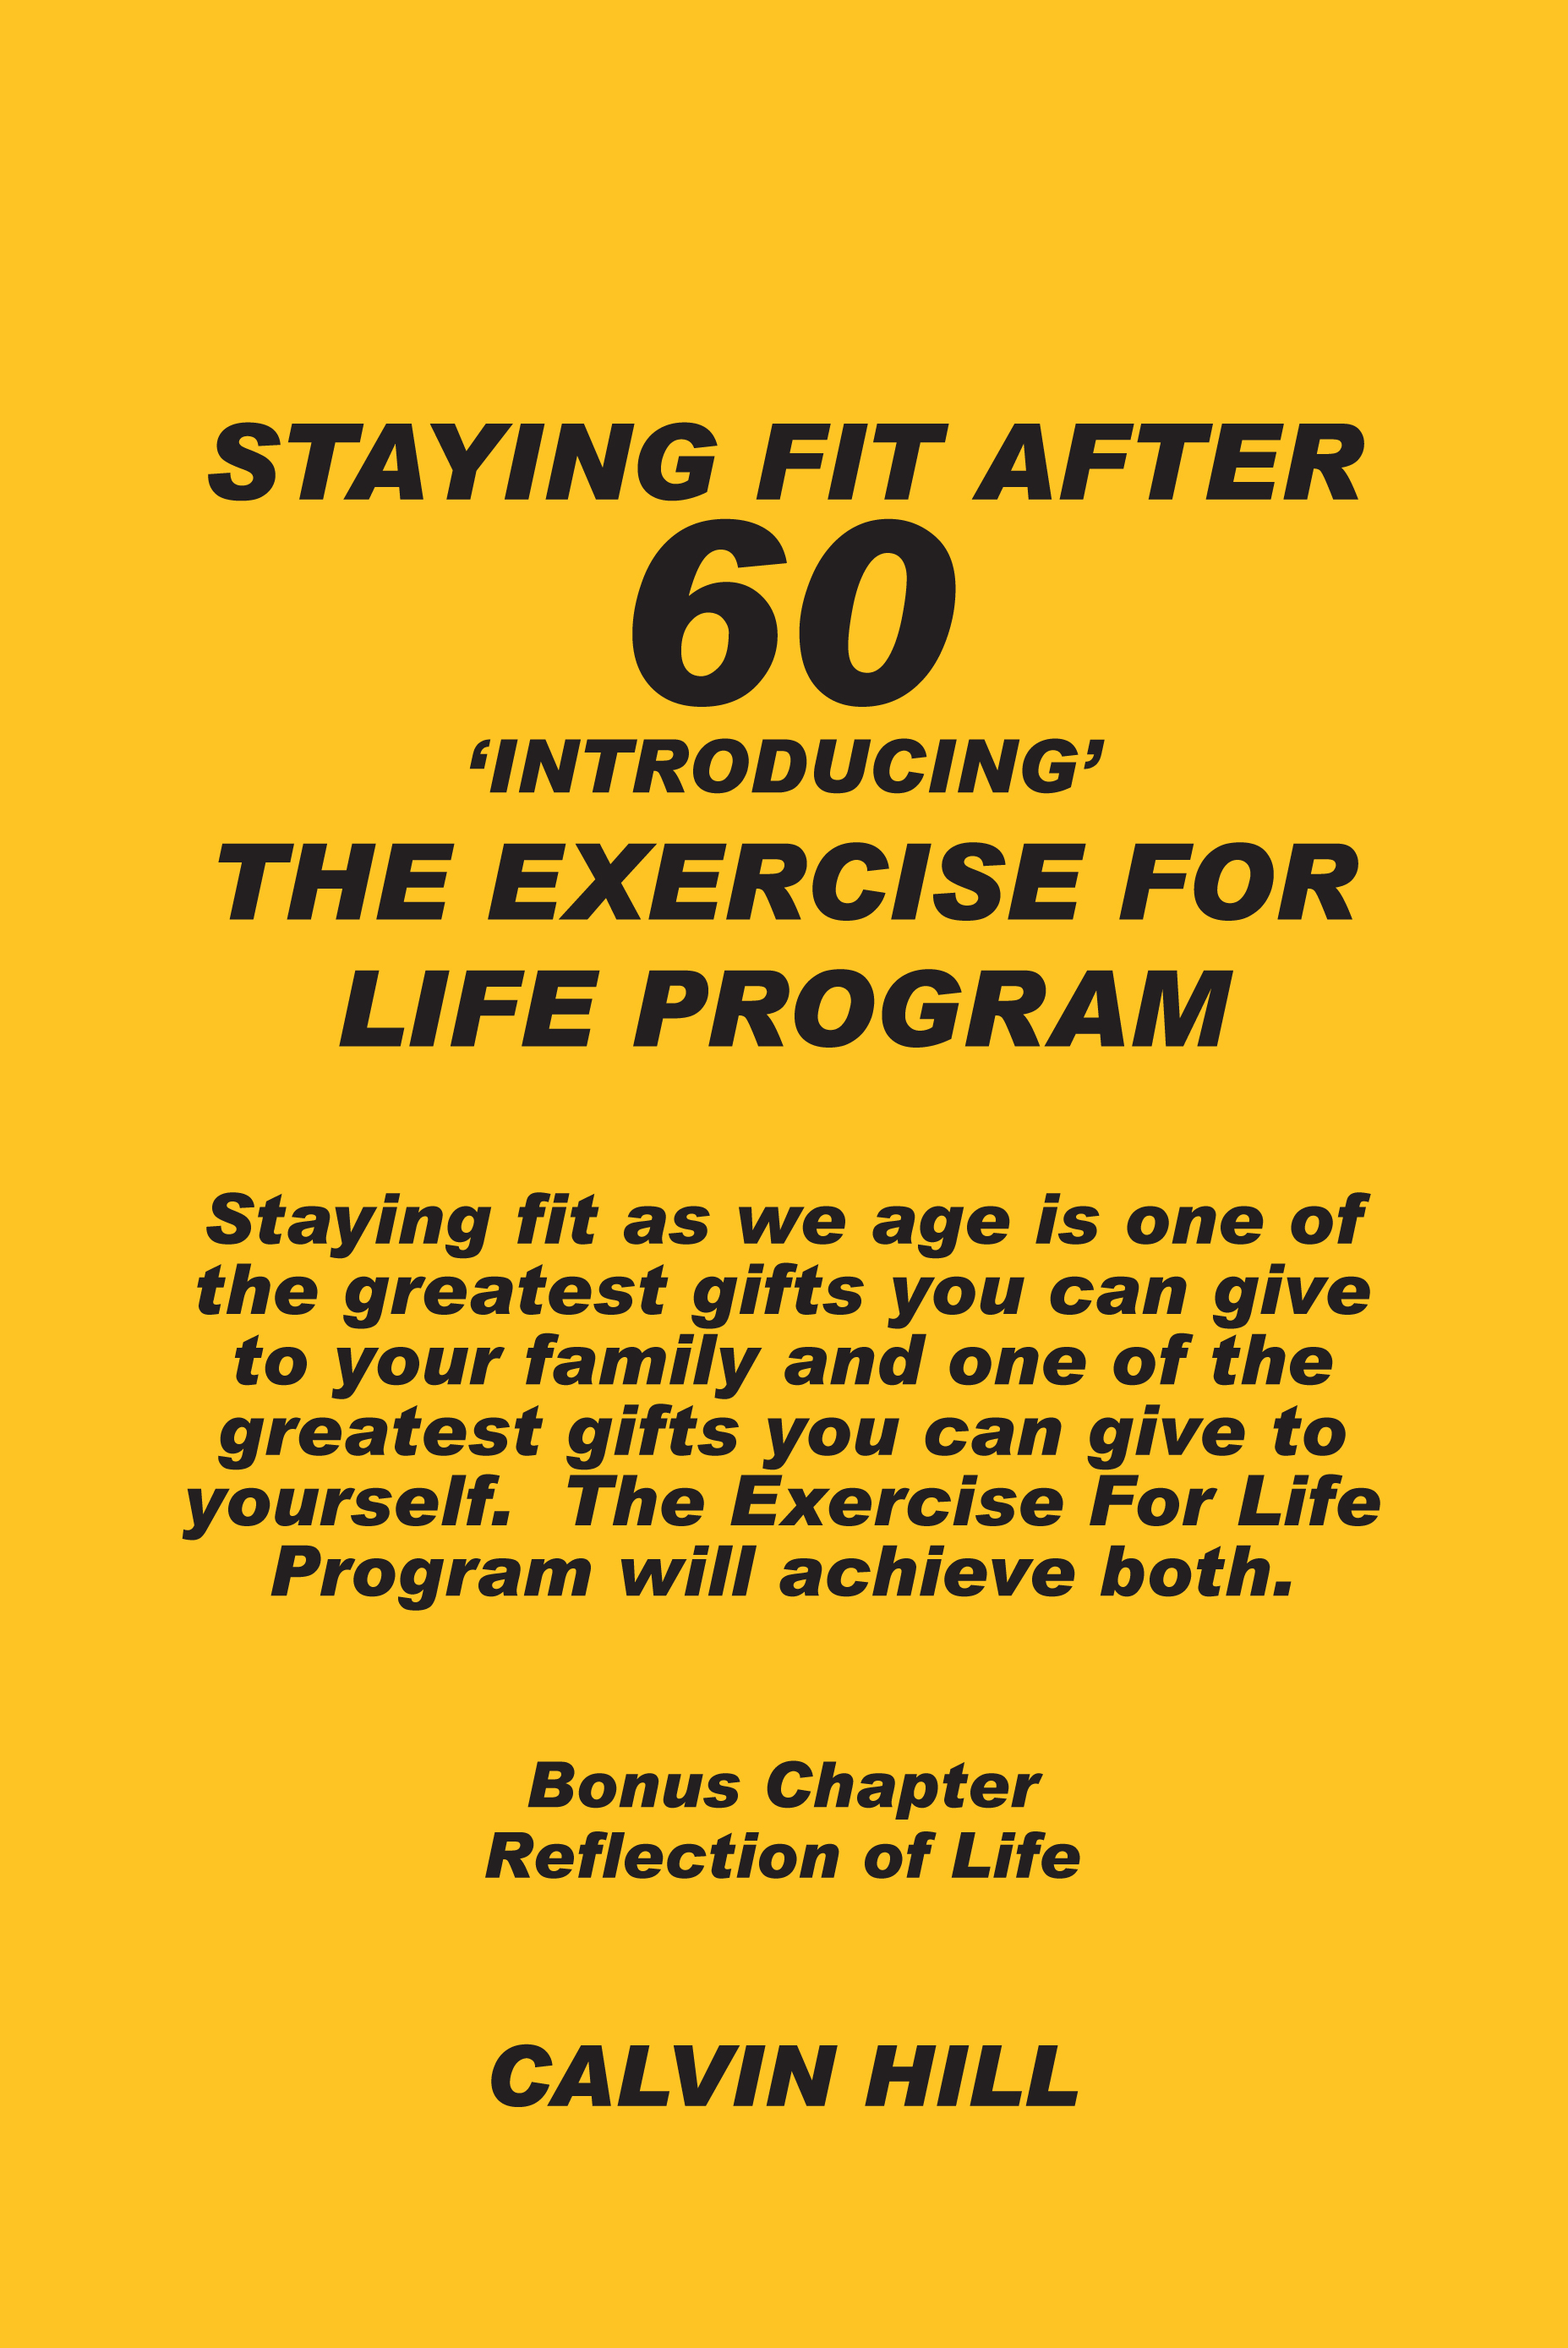 STAYING FIT AFTER 60: Introducing The Exercise For Life Program